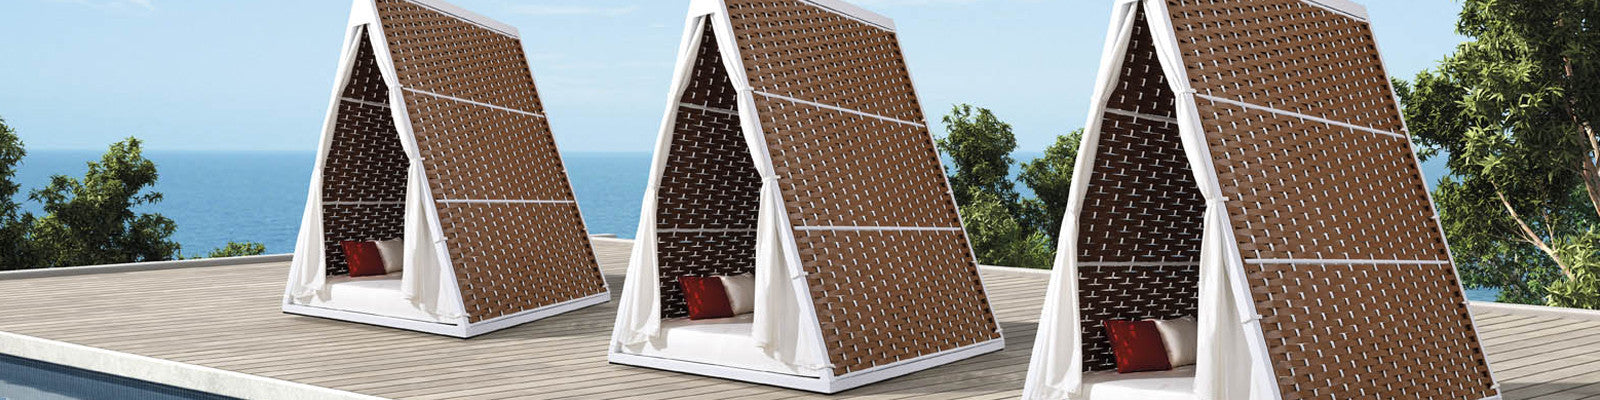 Daybeds & Cabanas | OROA - Luxury Outdoor Furniture Online